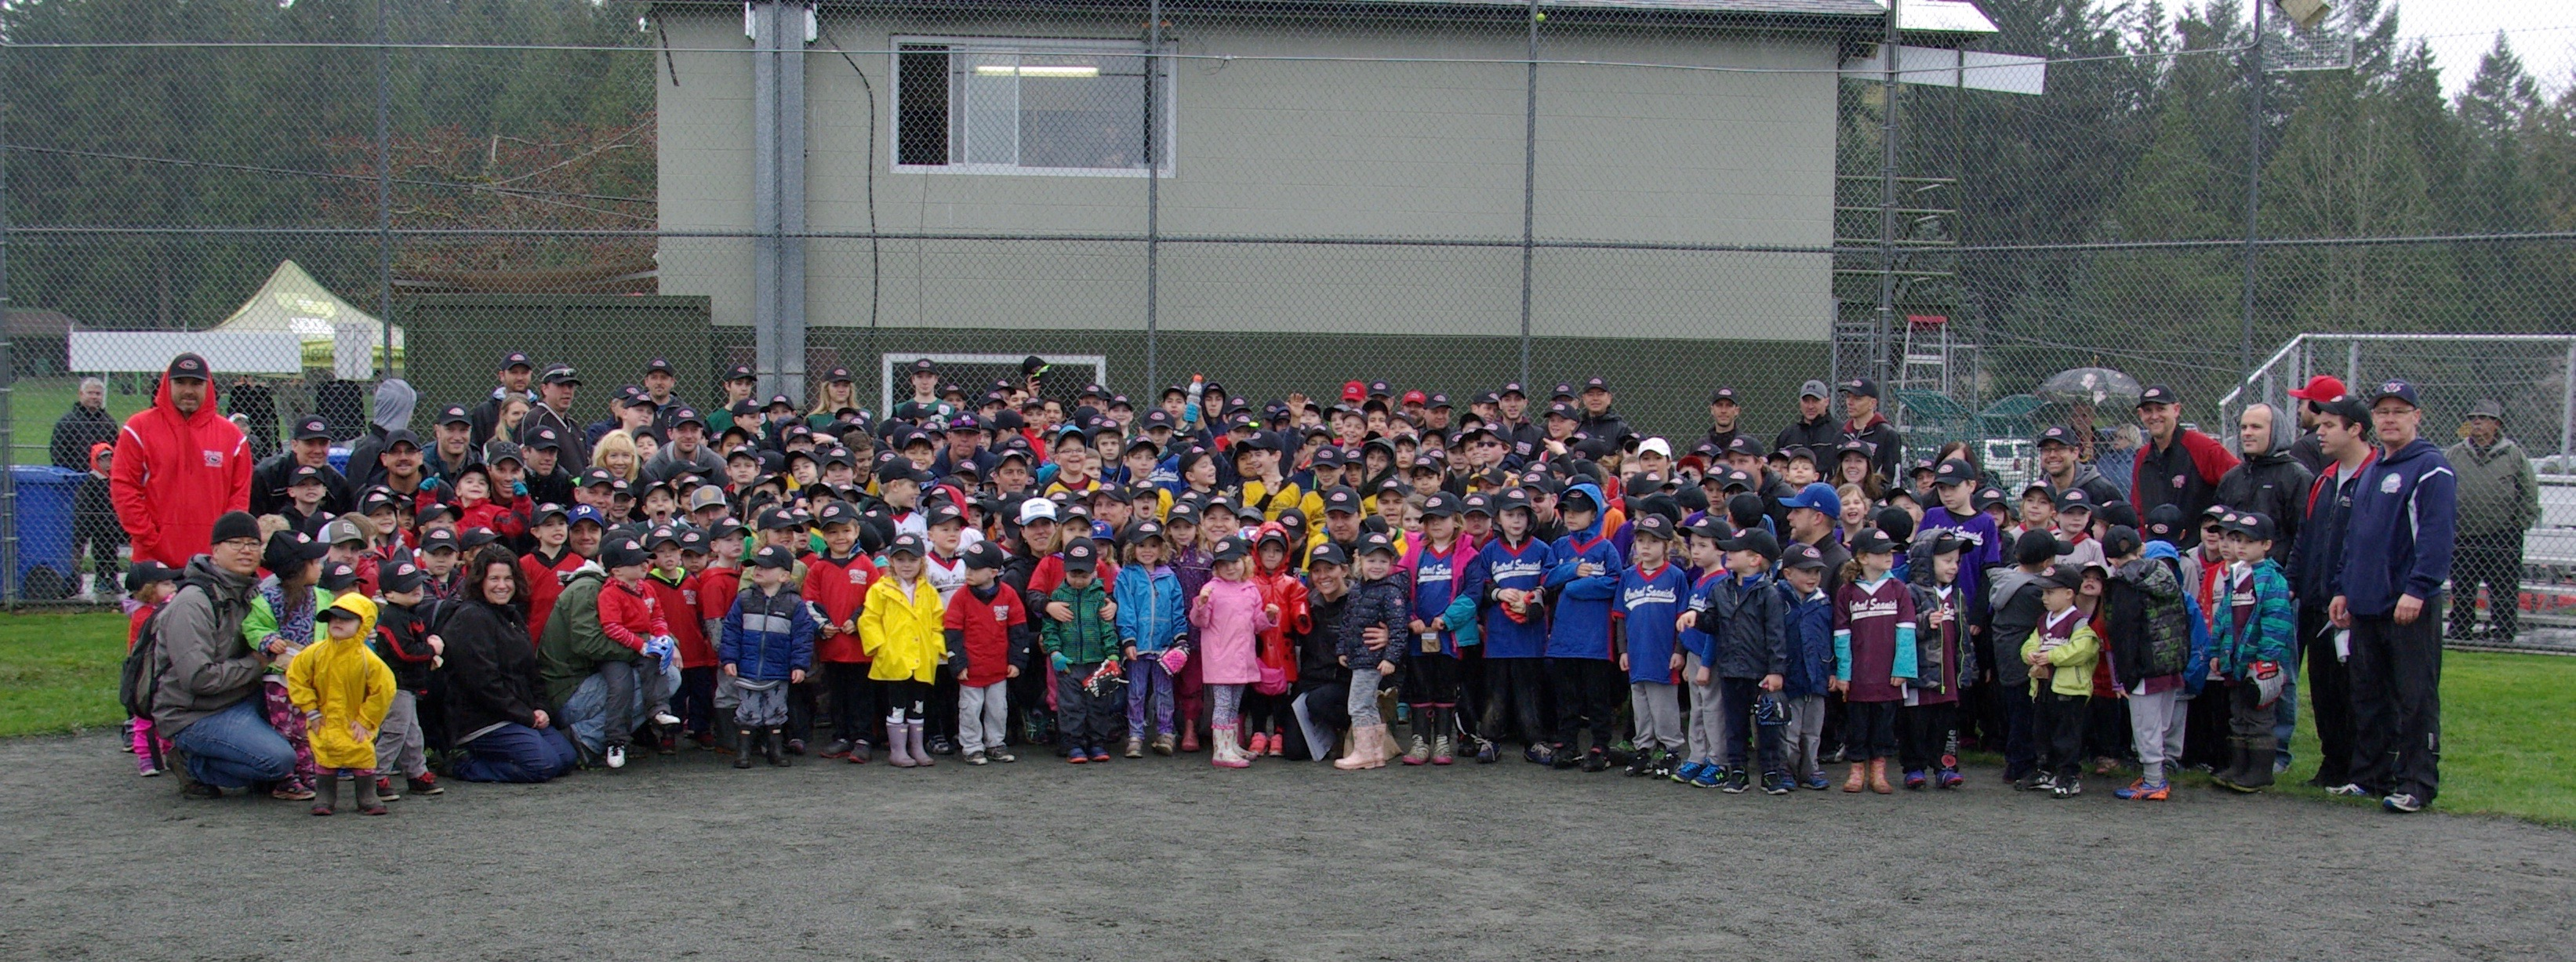 Opening ceremonies – wet but a success!